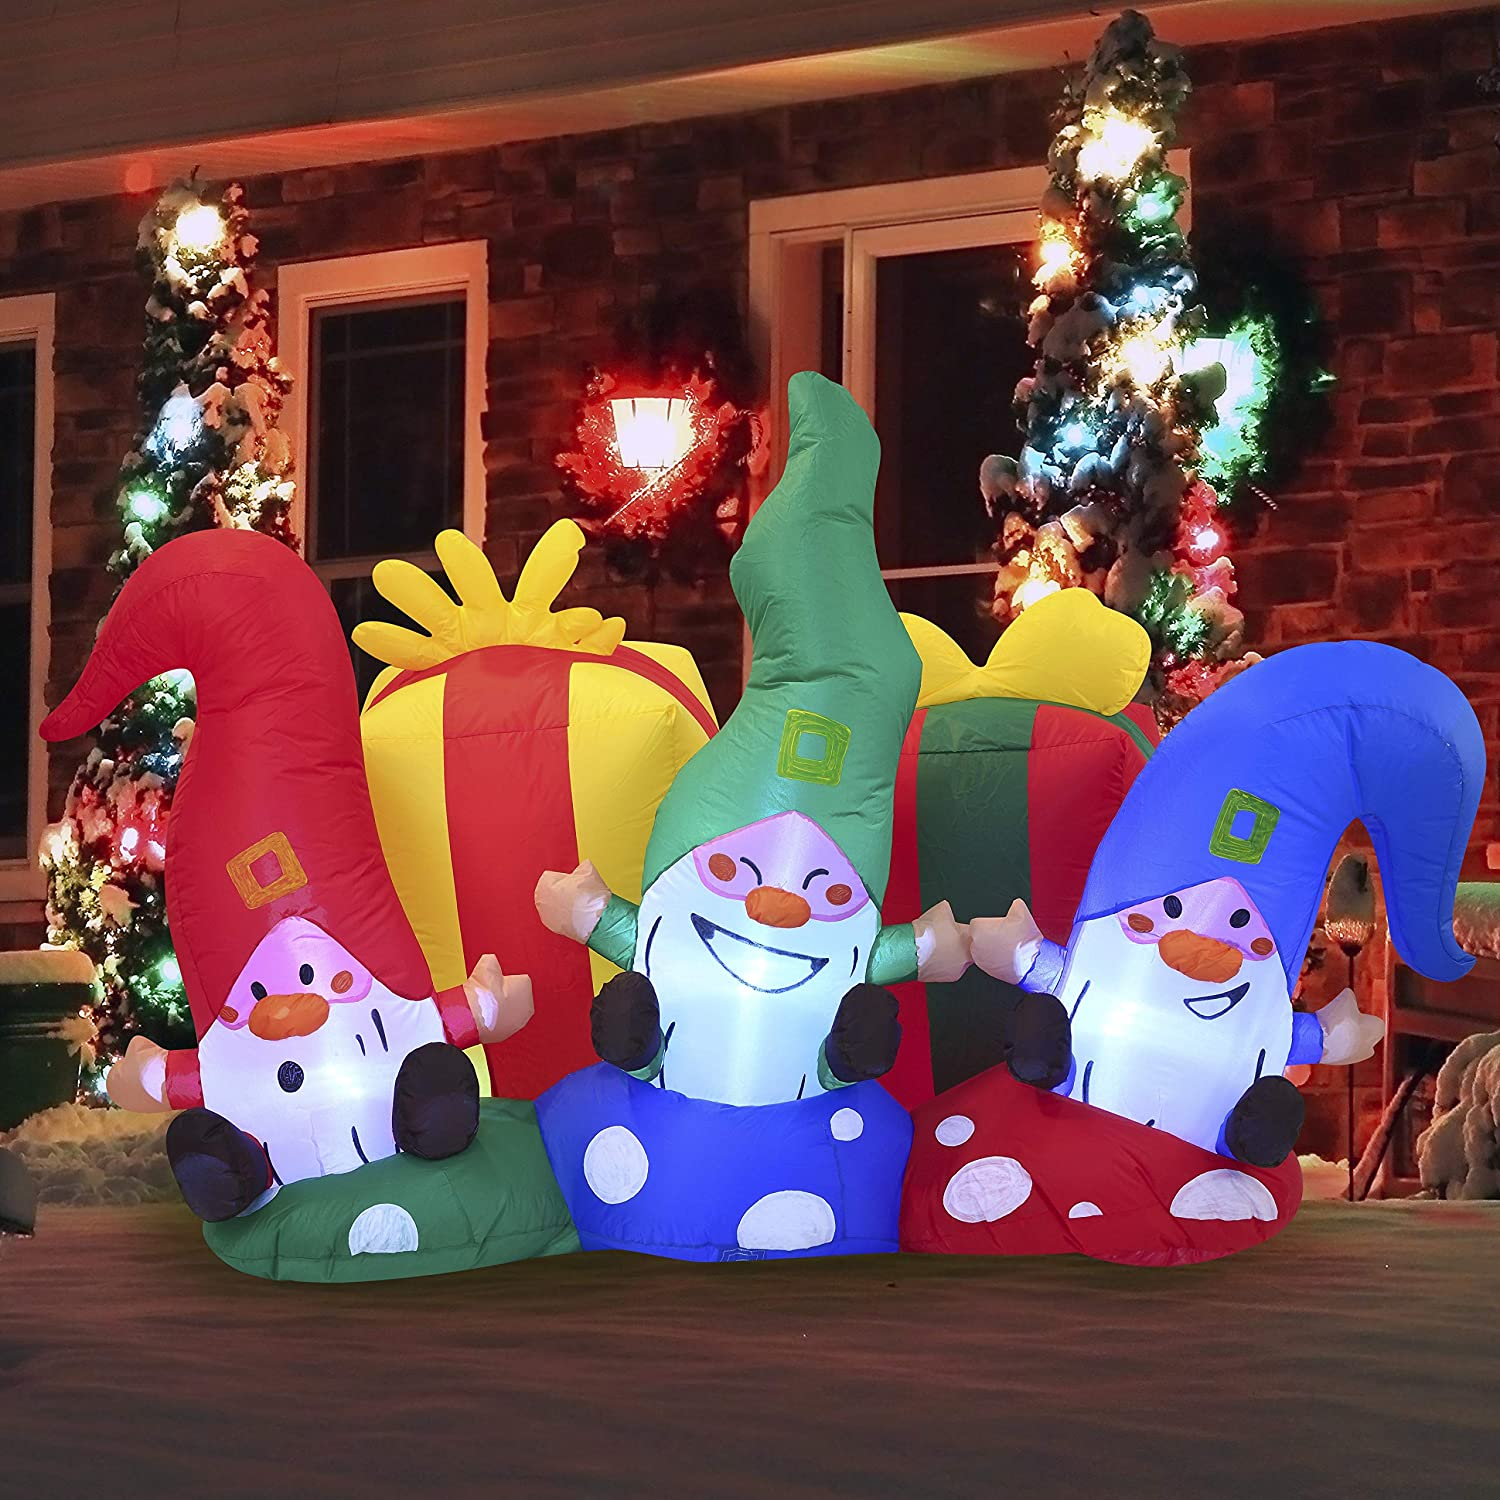 Joiedomi Christmas Inflatable Decoration 6ft Christmas Three Happy Gnomes Inflatable with Build-in LEDs Blow Up Inflatables for Xmas Party Indoor, Outdoor, Yard, Garden, Lawn, Winter Decor